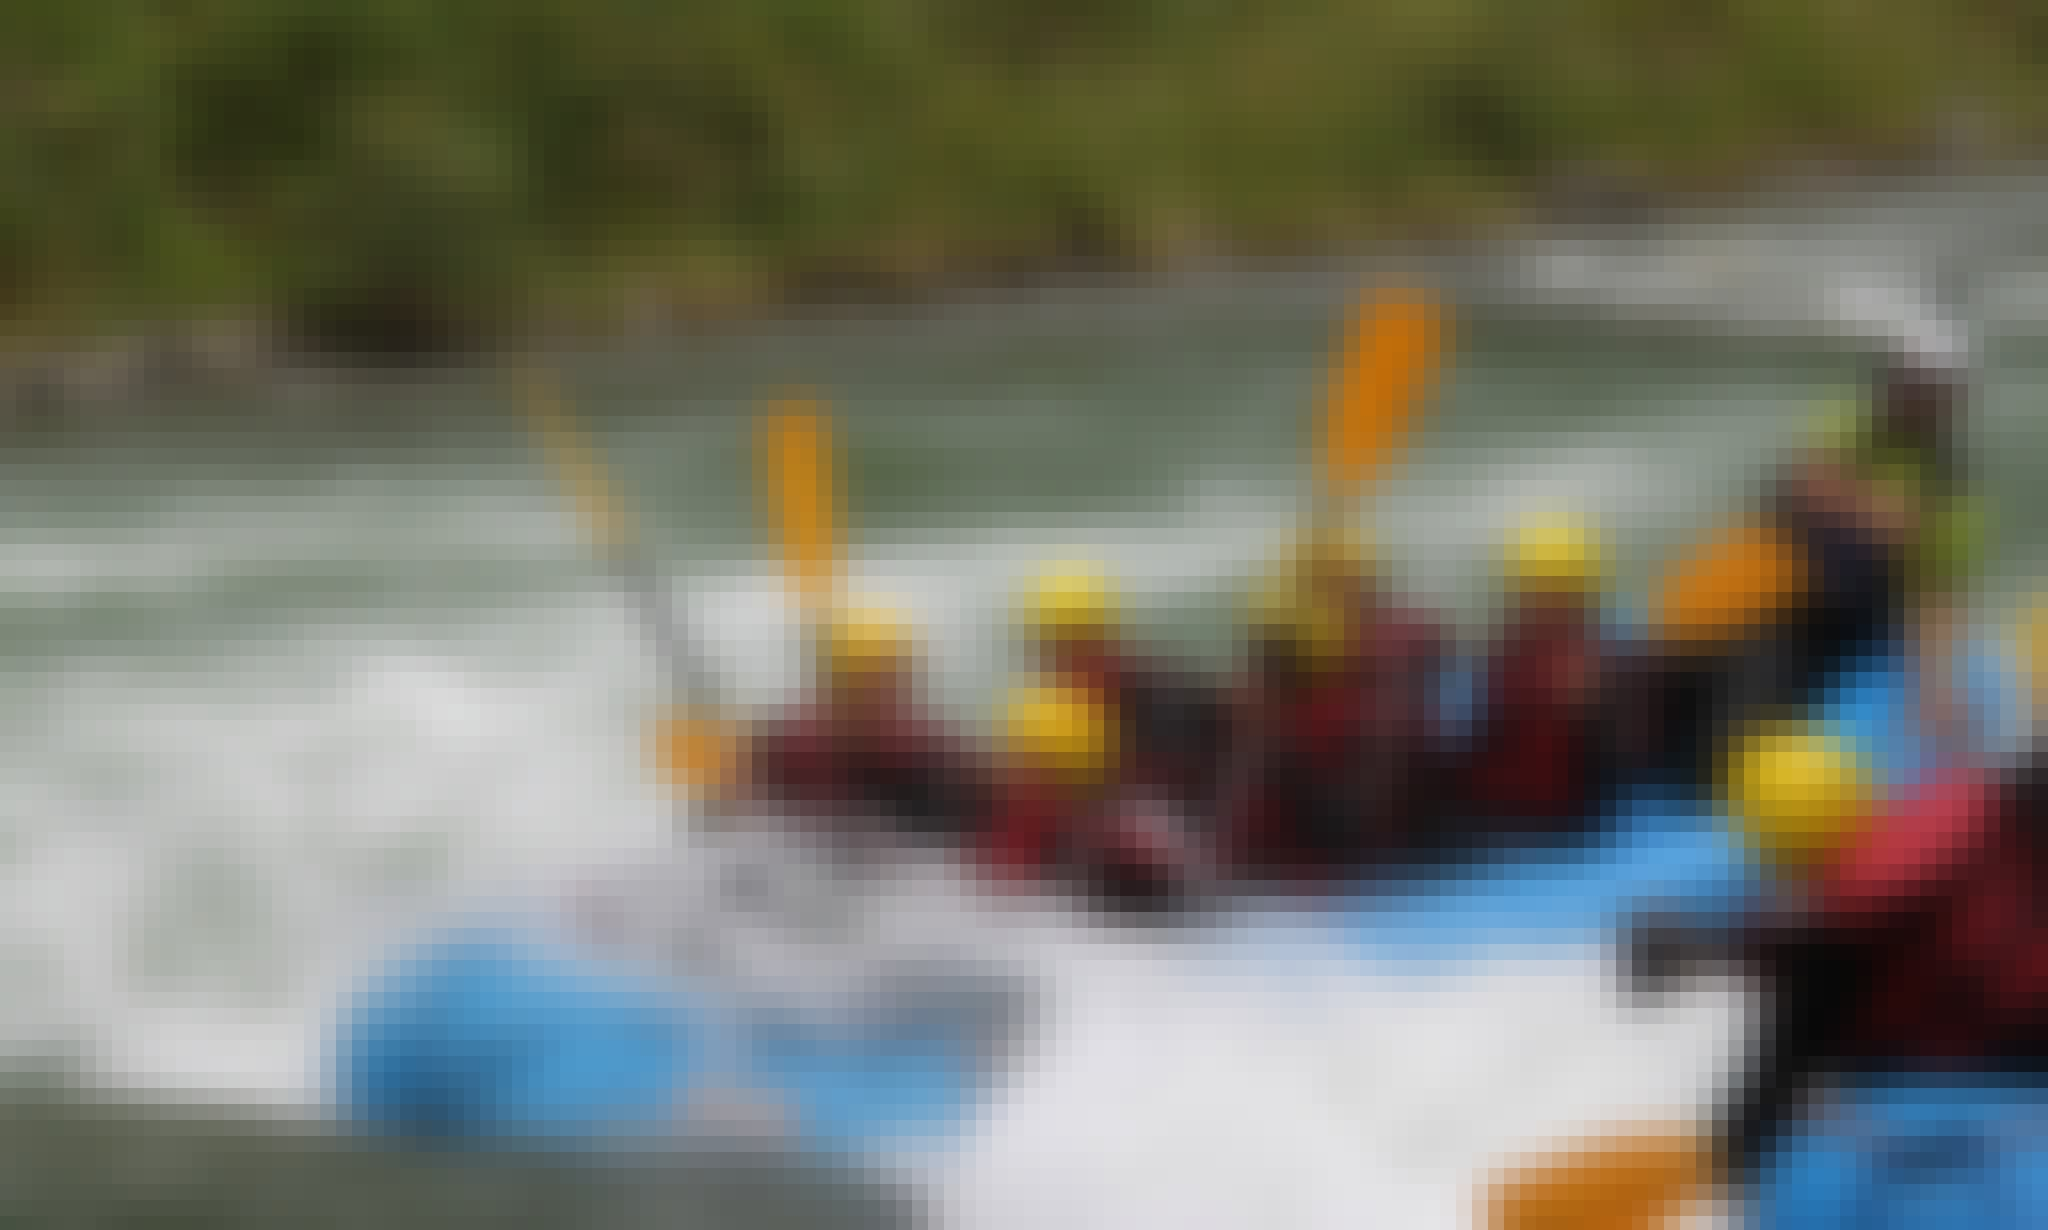 Whitewater Rafting in Sand in Taufers